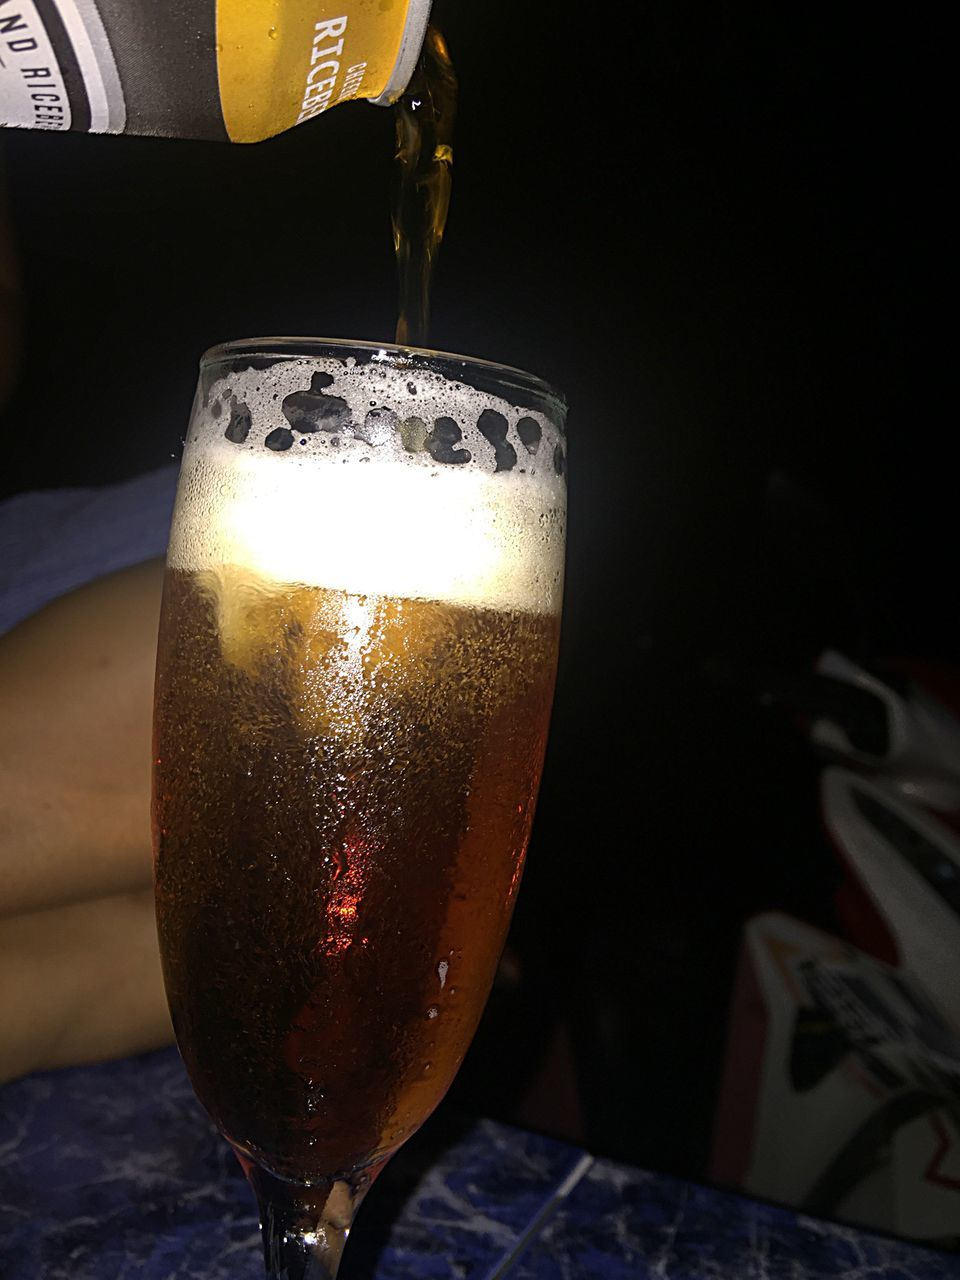 drink, refreshment, food and drink, frothy drink, close-up, alcohol, drinking glass, beer glass, beer - alcohol, no people, beer, freshness, indoors, day